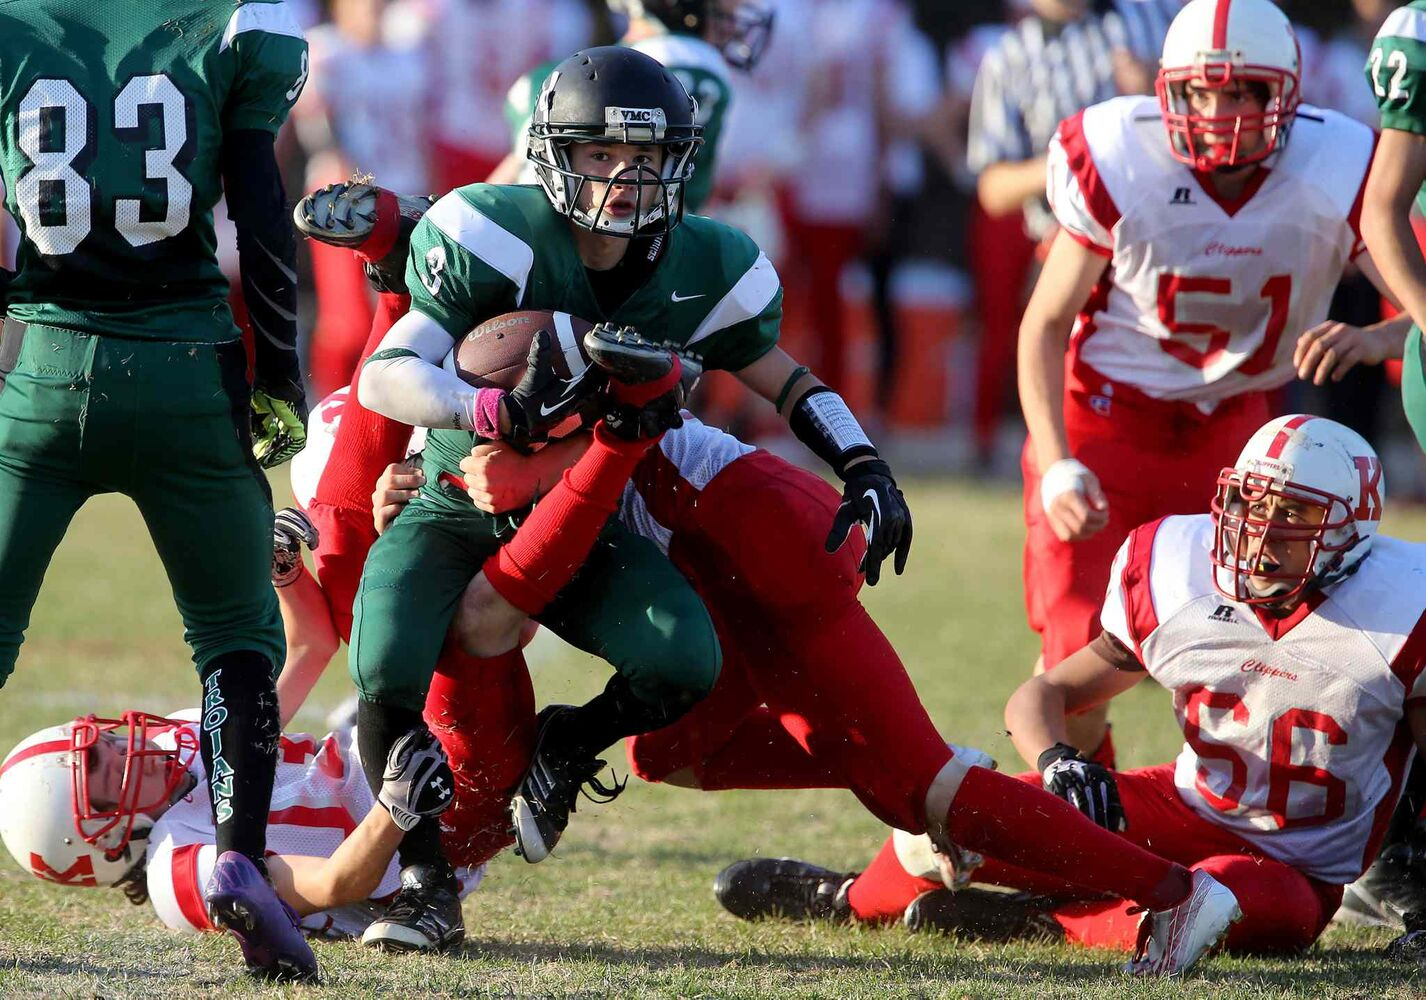 Matt Lemay of the Vincent Massey Trojans is tackled by a gang of Kelvin Clippers. (TREVOR HAGAN / WINNIPEG FREE PRESS)